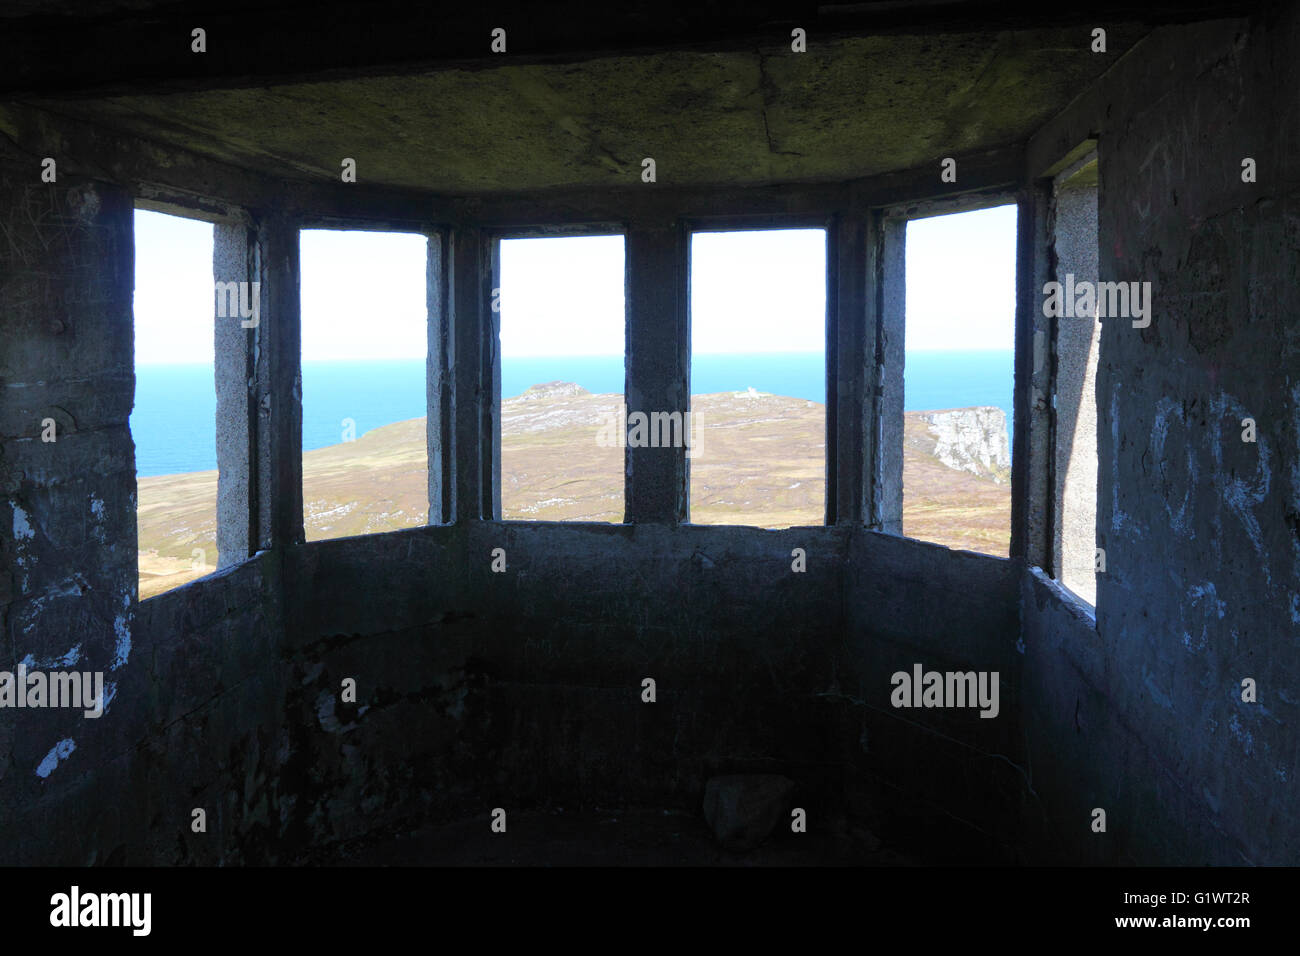 The view from a WW2 lookout post (LOP) at Horn Head, north Donegal, Ireland. - Stock Image